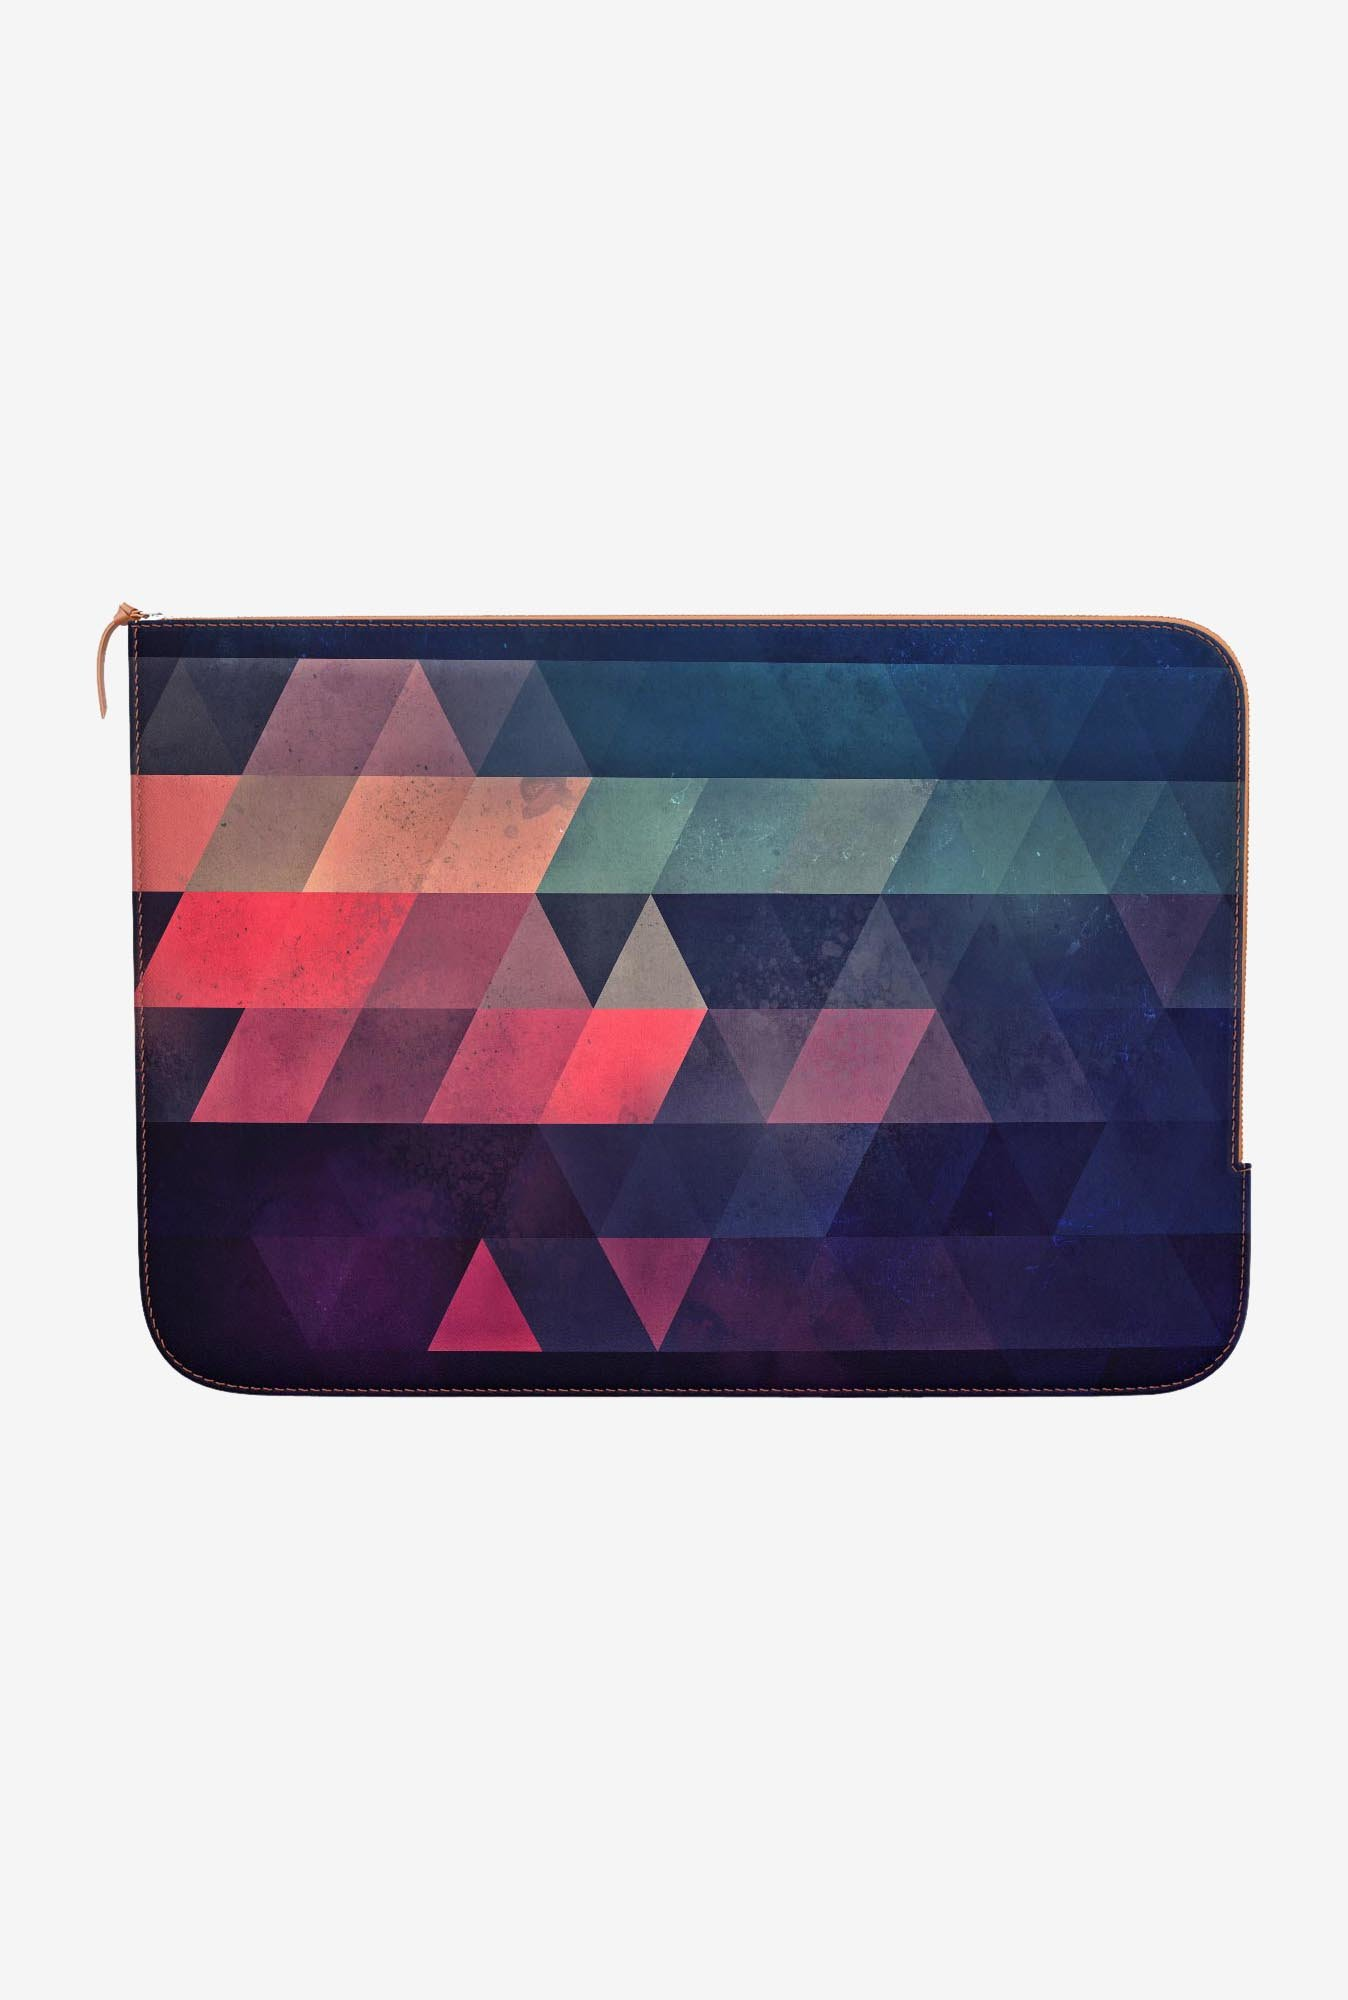 "DailyObjects Edyfy Wyth Lyys Macbook Air 13"" Zippered Sleeve"